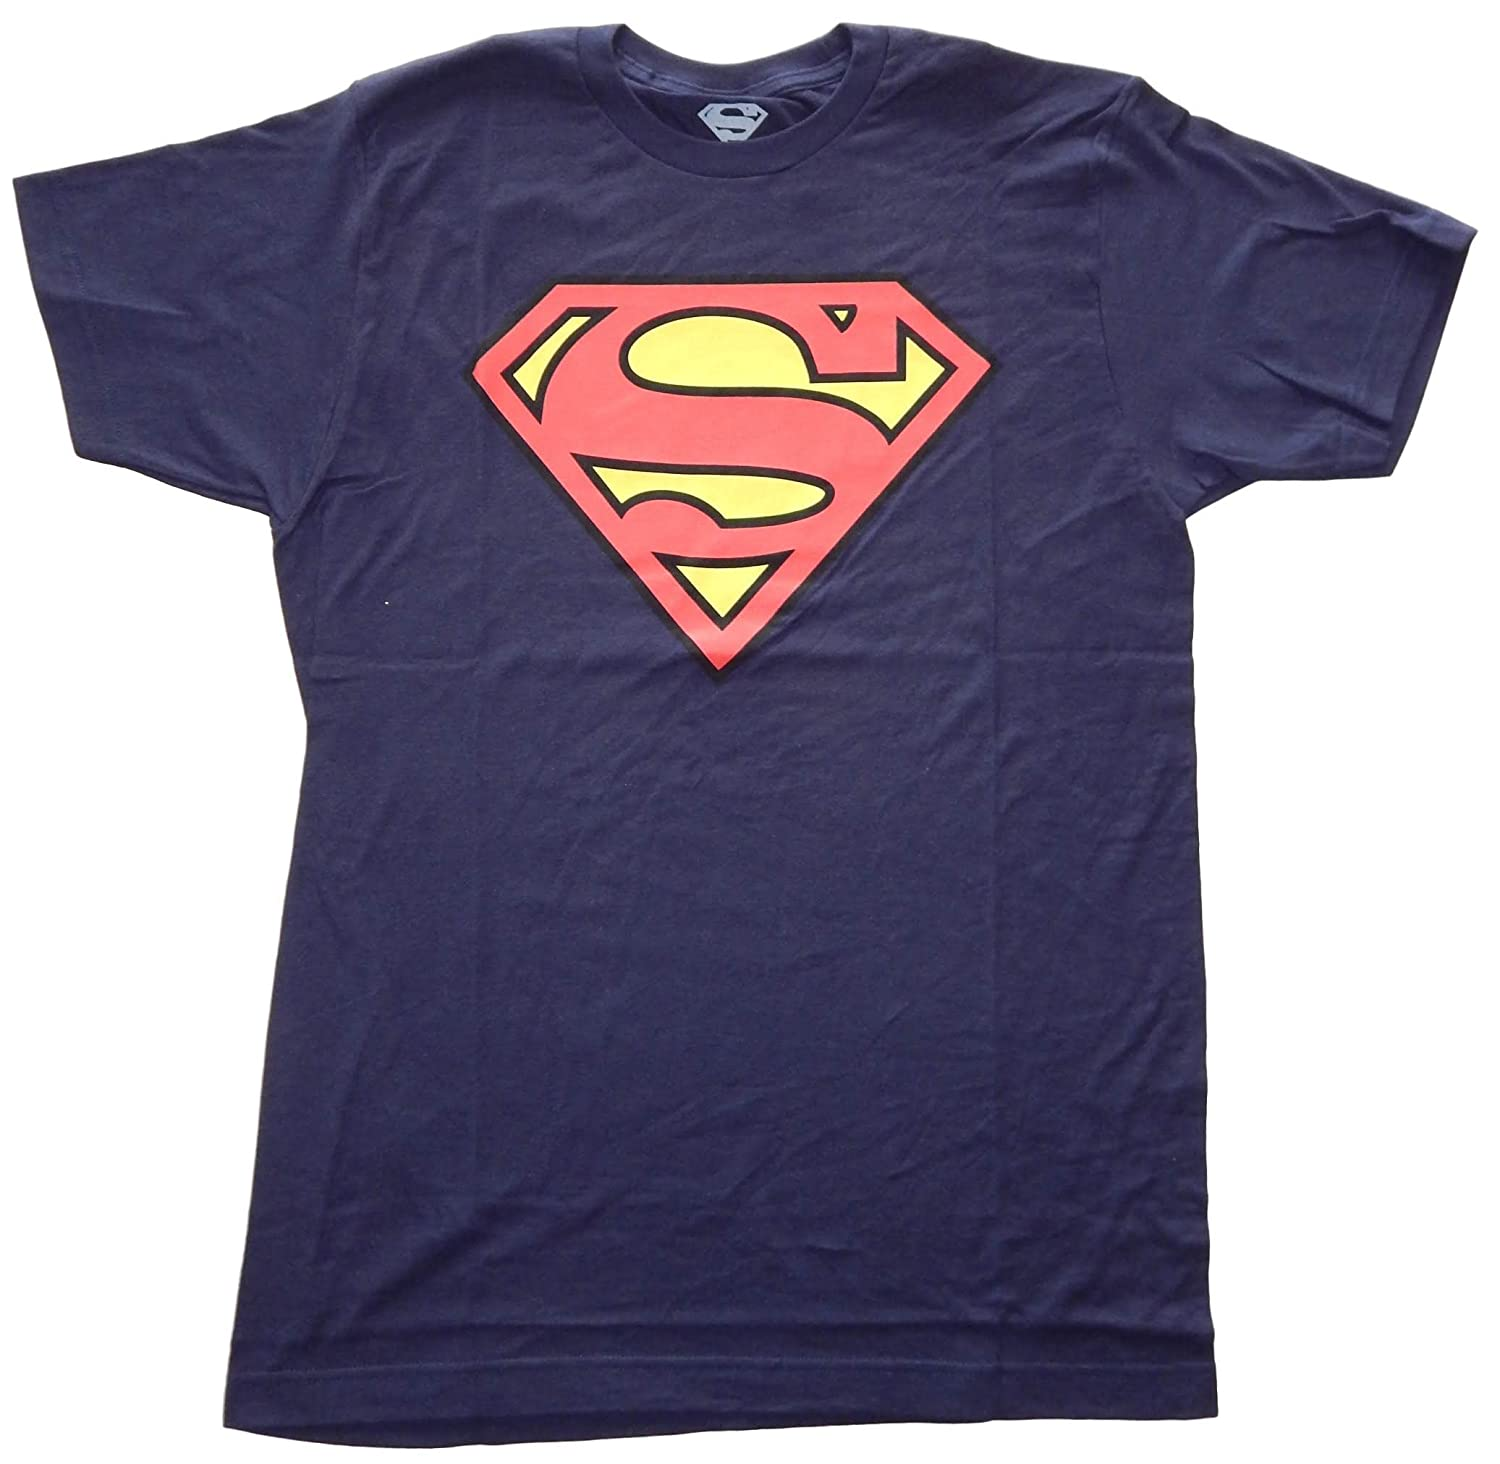 ac9c6b483dc Amazon.com  DC Comics Superman Classic Logo Men s Royal Blue T-shirt   Clothing